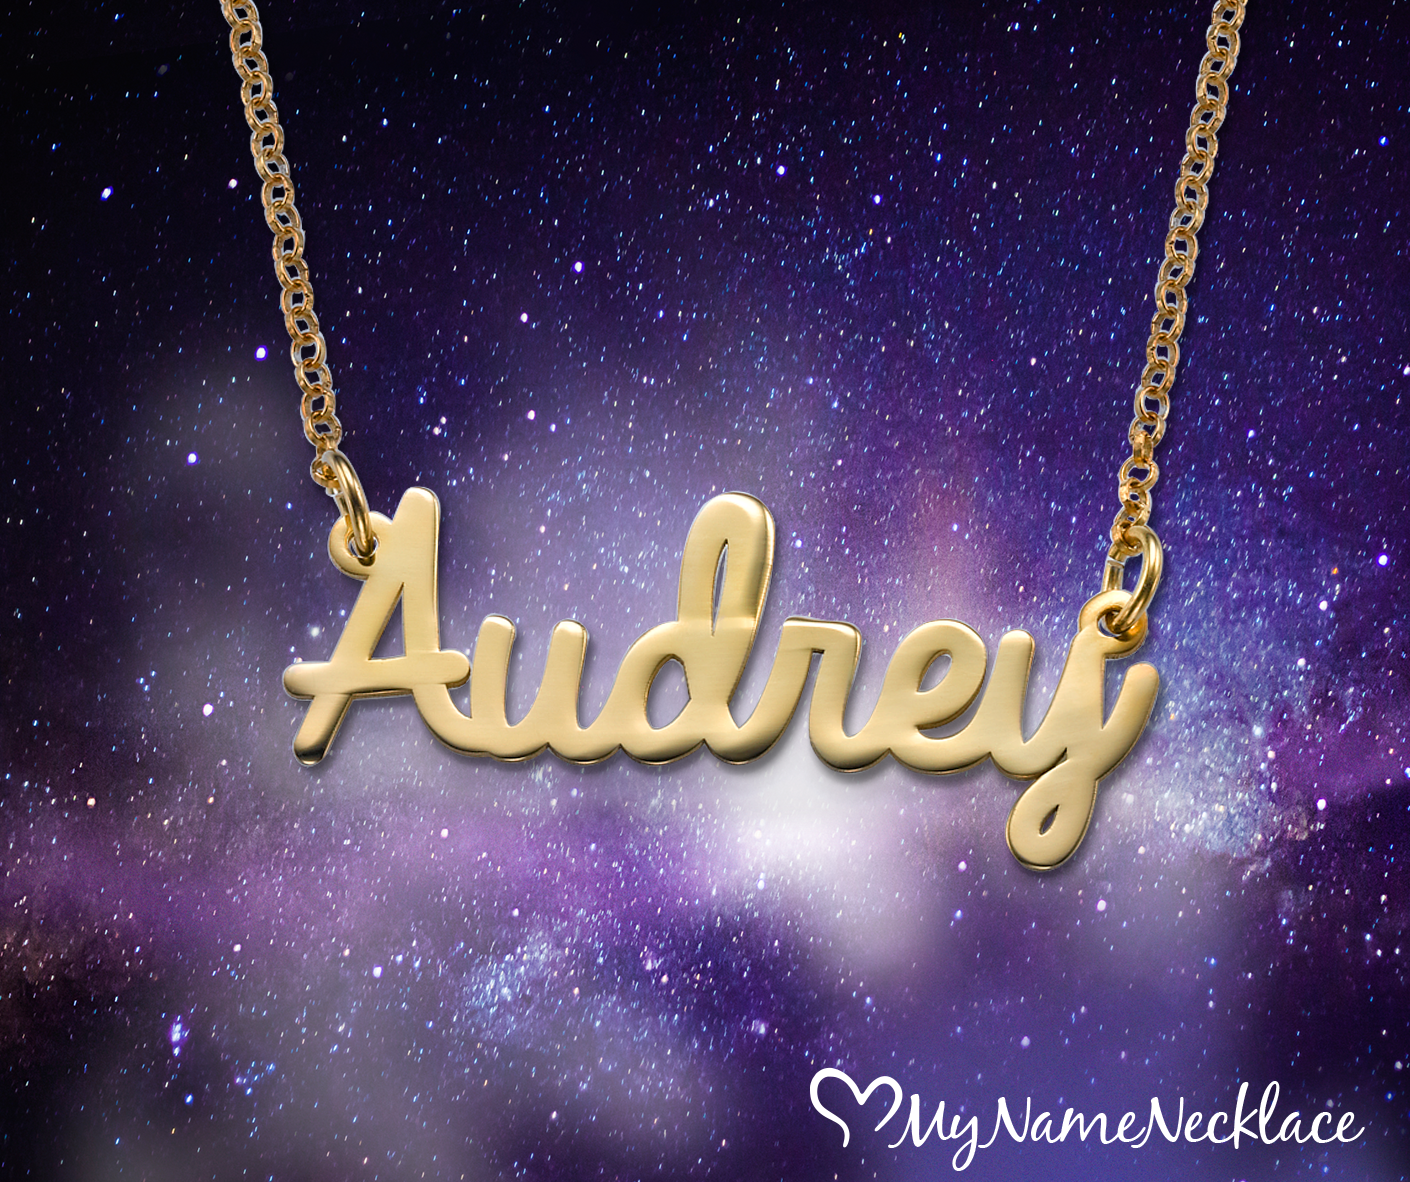 Look chic and stylish with our newest personalized necklace, the Cursive Name Necklace in 18k Gold Plating. Place any name/word on this name necklace.